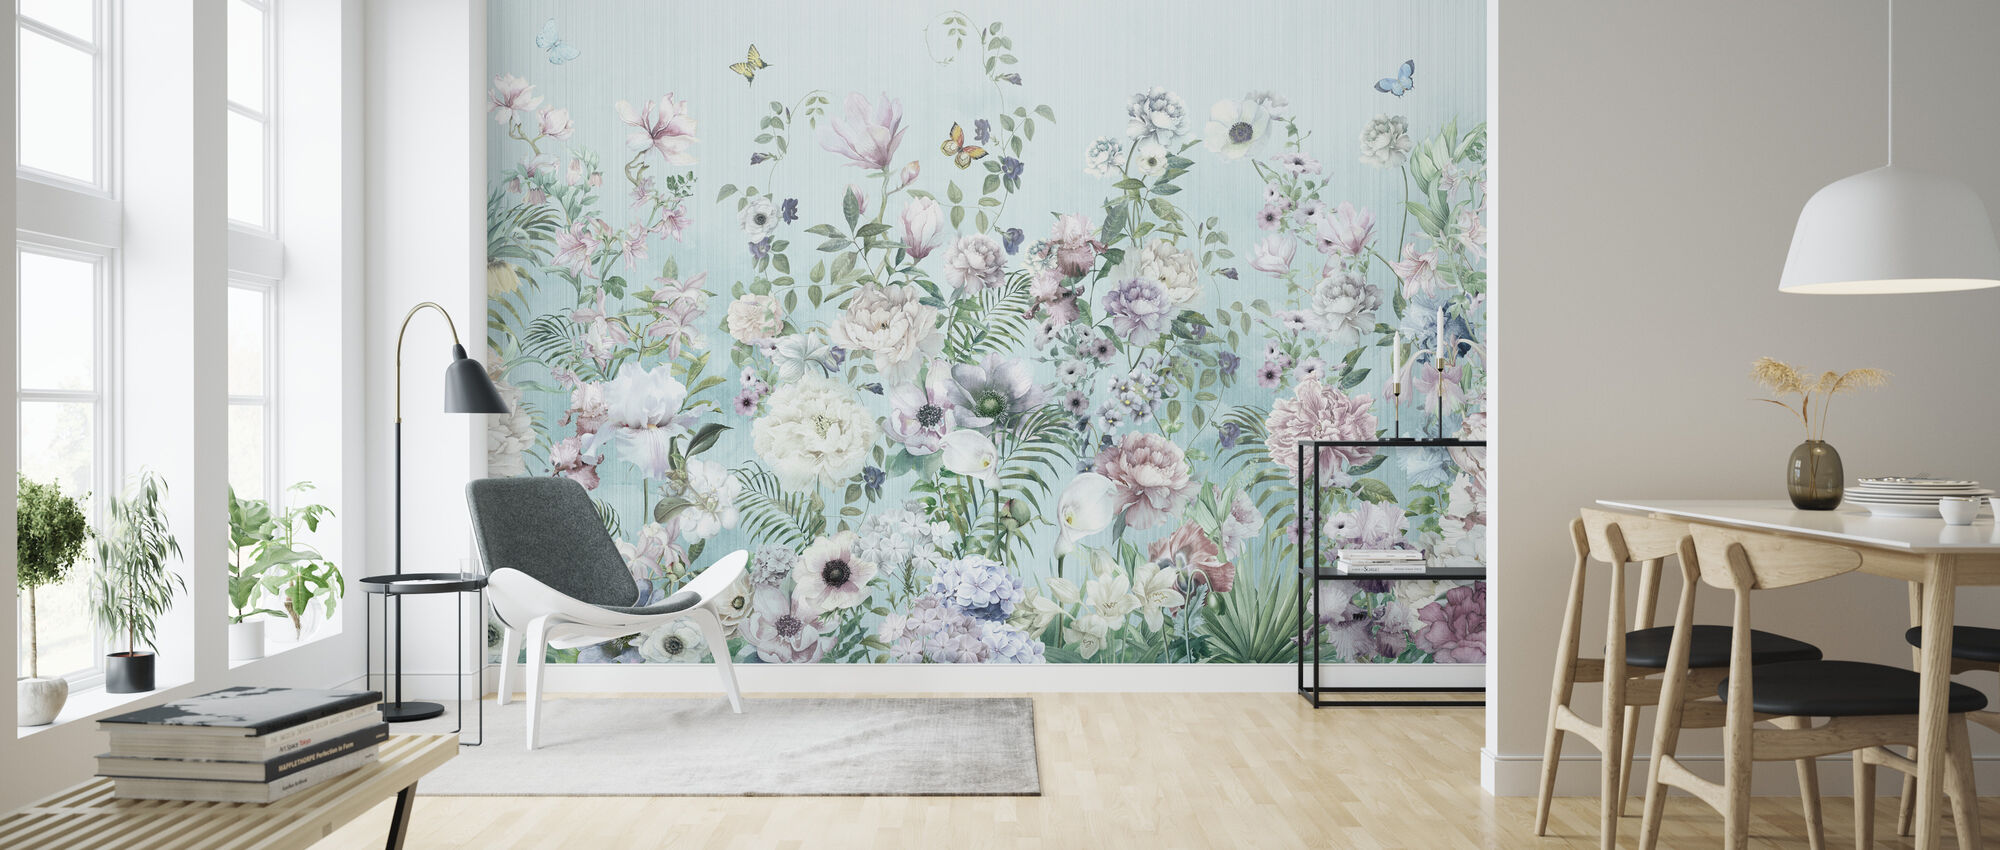 Blooming Floral - Wallpaper - Living Room